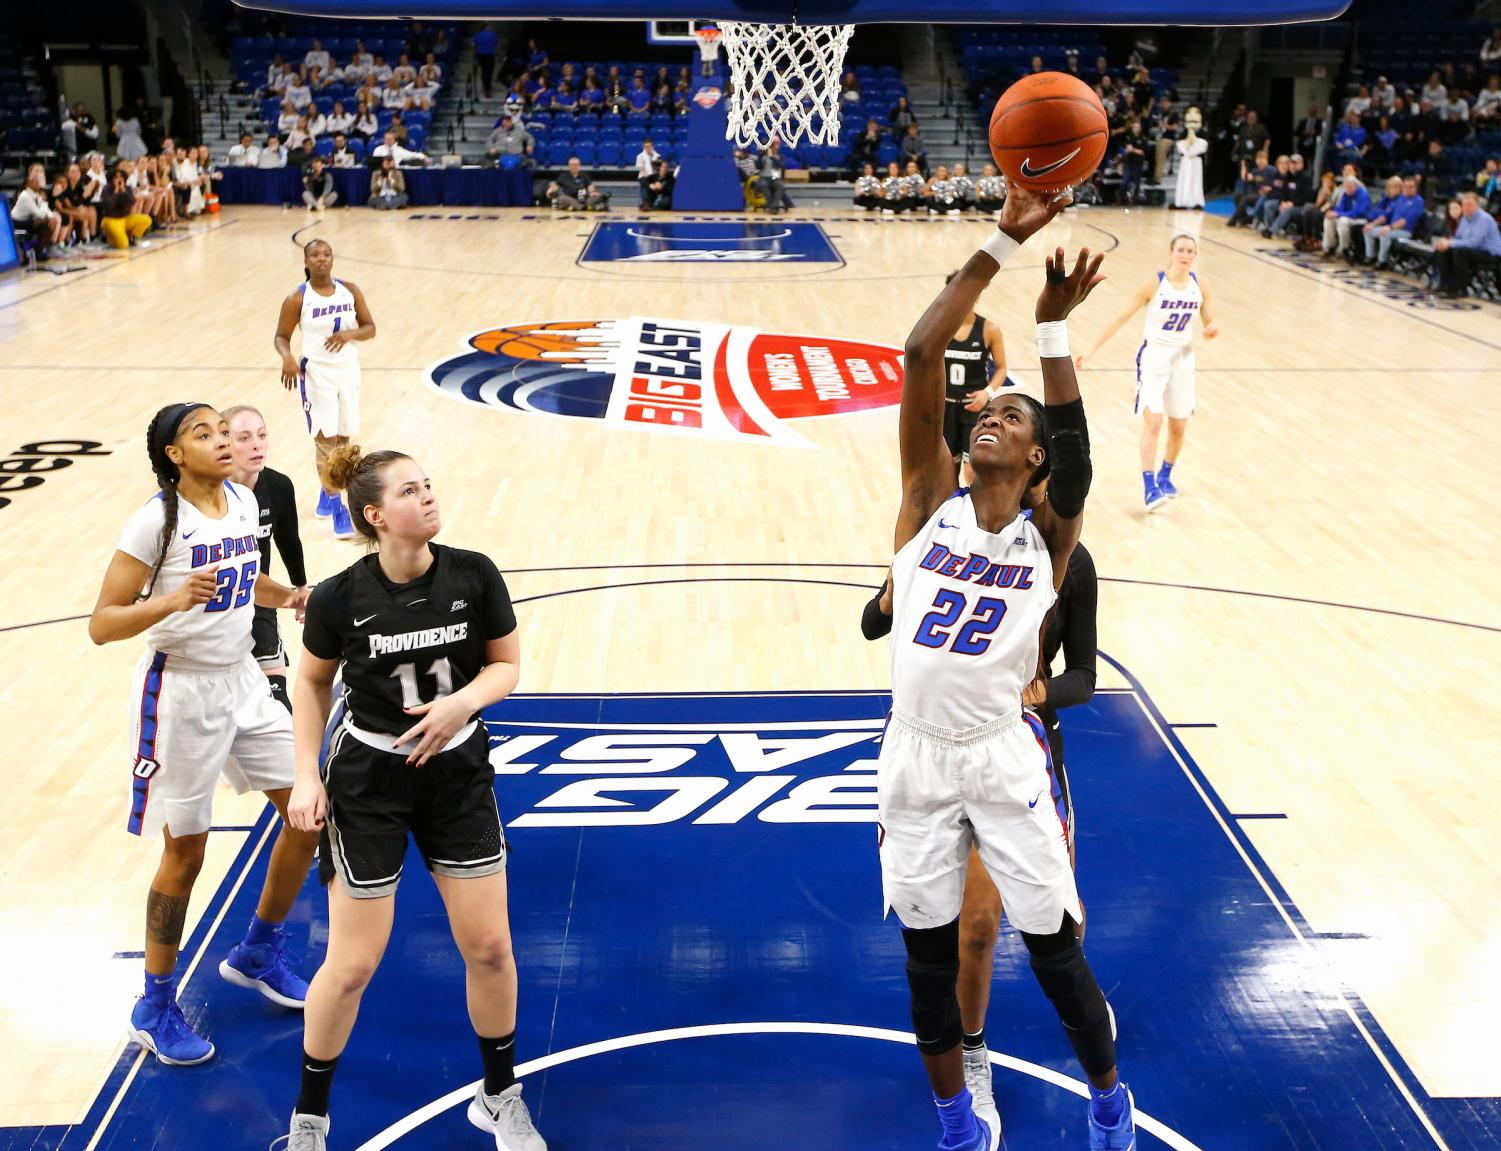 DePaul junior forward Chante Stonewall attempts a layup during the Blue Demons win over Providence Sunday night in the quarterfinals of the Big East Tournament. Stonewall finished with nine points. Steve Woltmann/BIG EAST